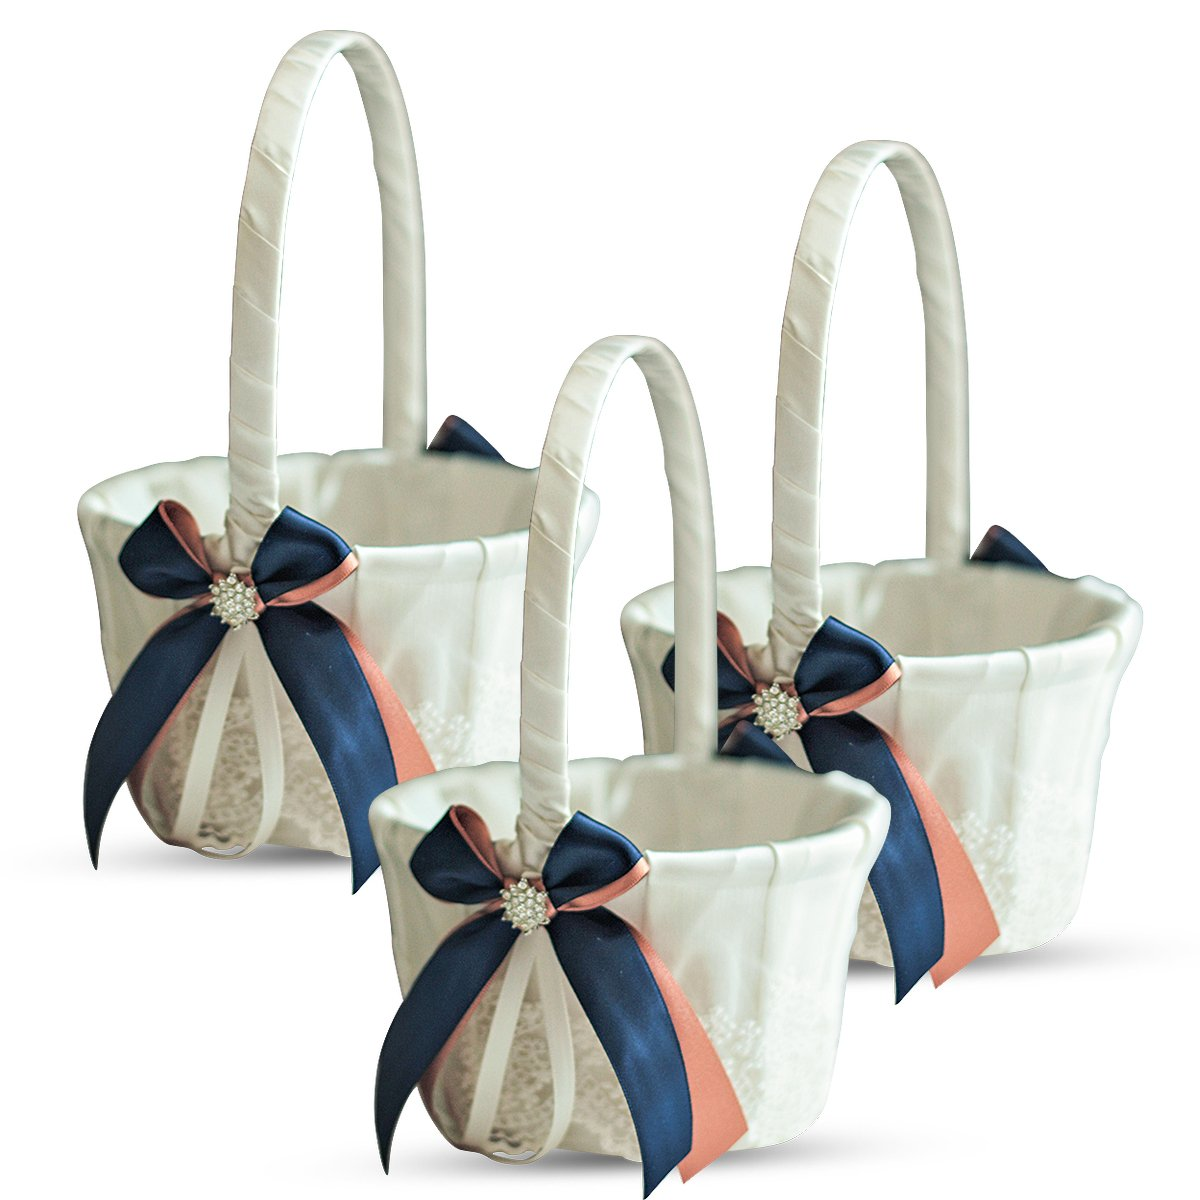 Alex Emotions Ivory Ring Bearer Pillow and Basket Set | Lace Collection | Flower Girl & Welcome Basket for Guest | Handmade Wedding Baskets & Pillows (Navy Rose Gold)